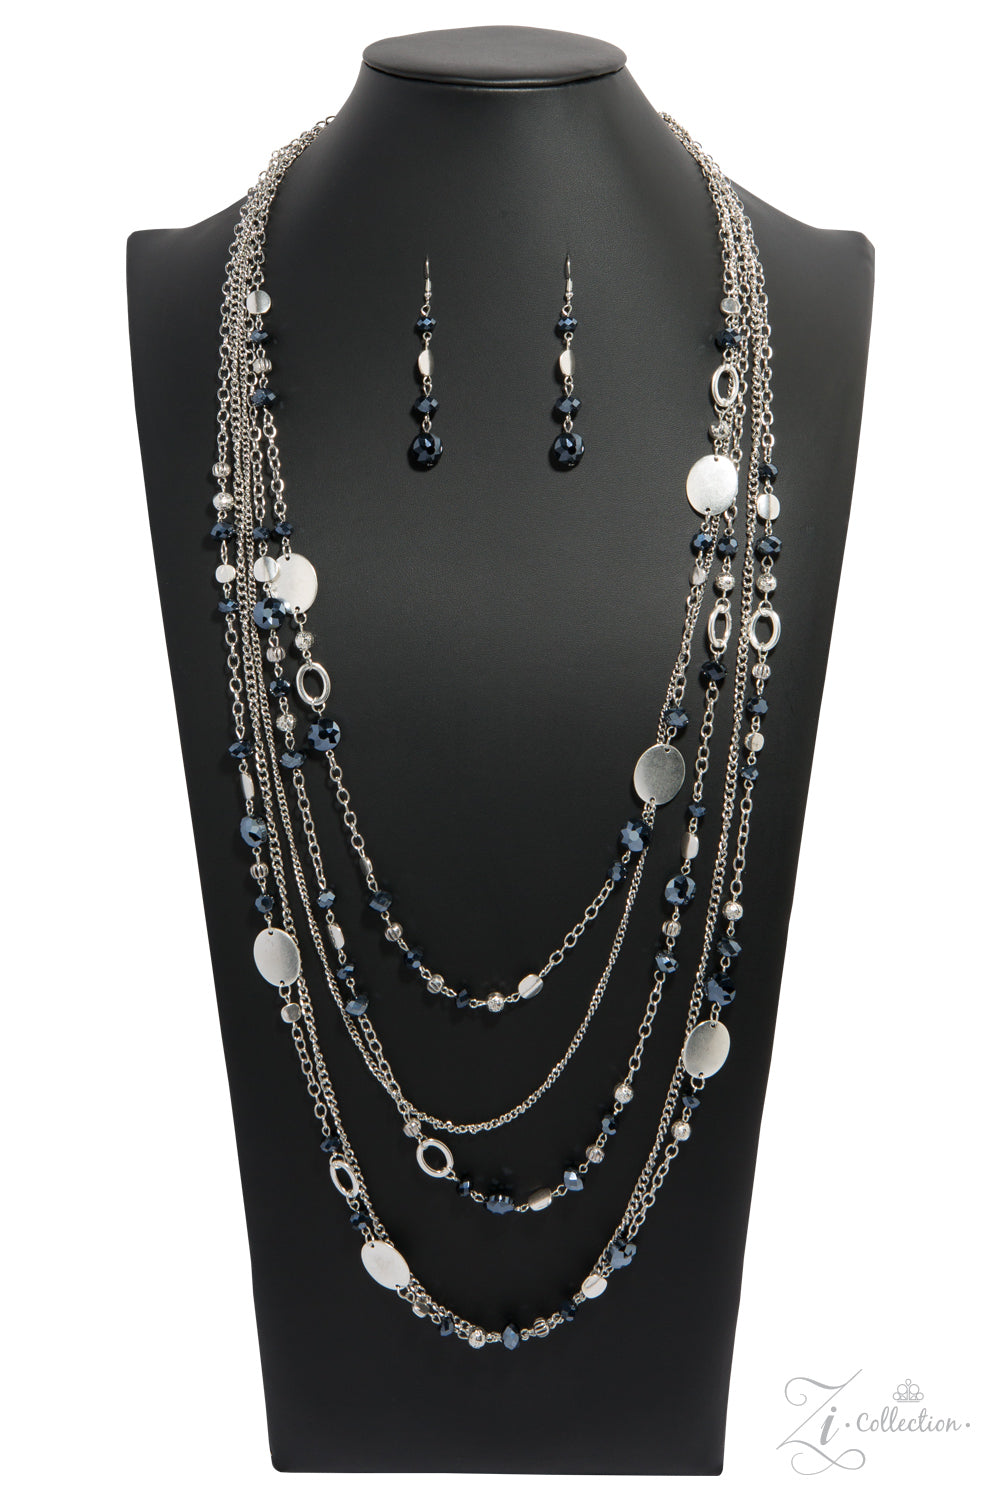 Signature Zi Collection Harmonious - Paparazzi Necklace - Be Adored Jewelry